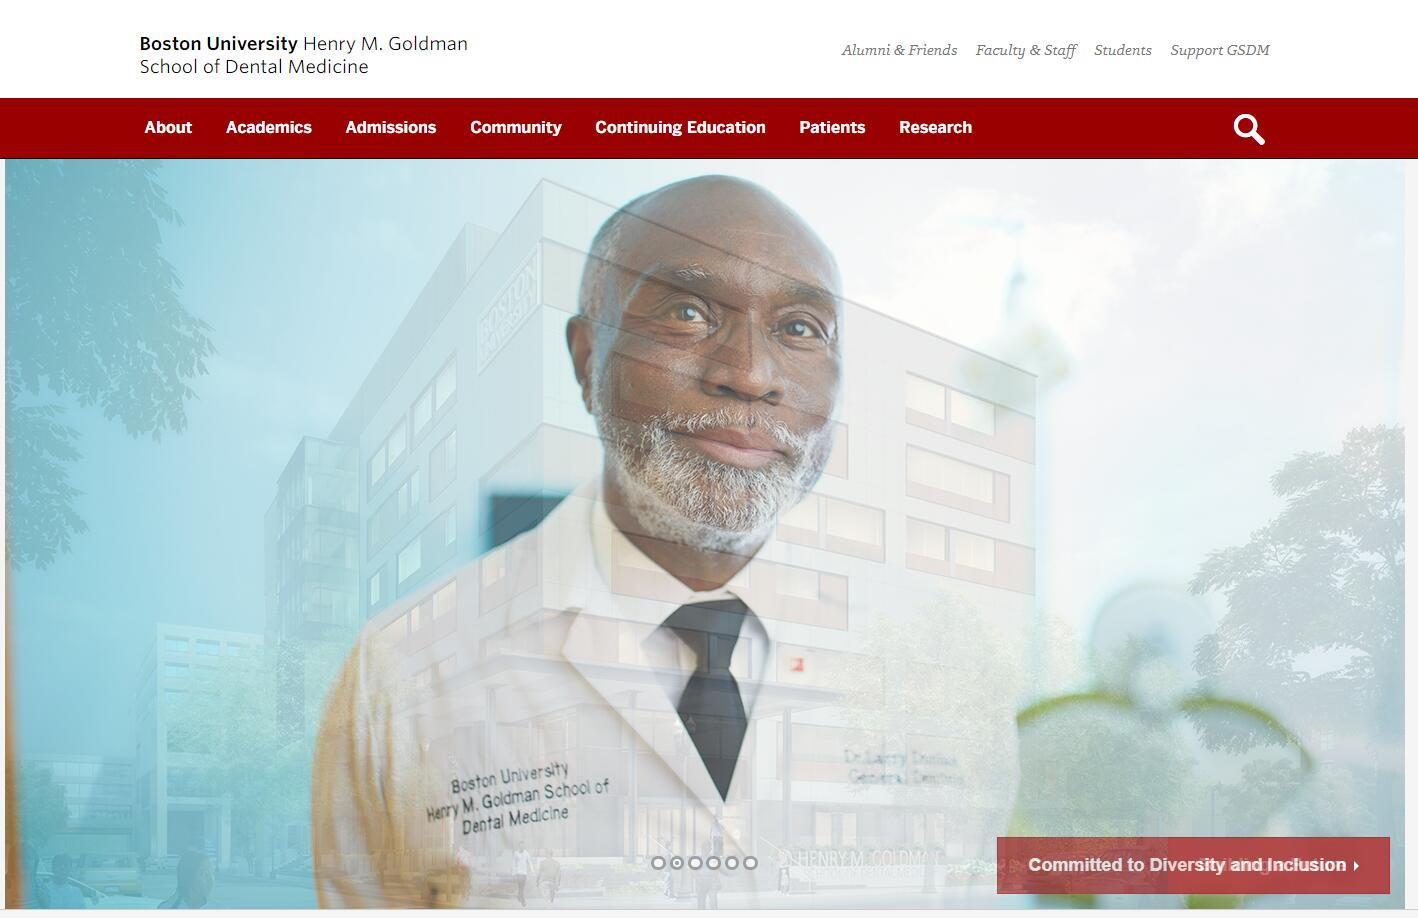 Boston University Goldman School of Dental Medicine